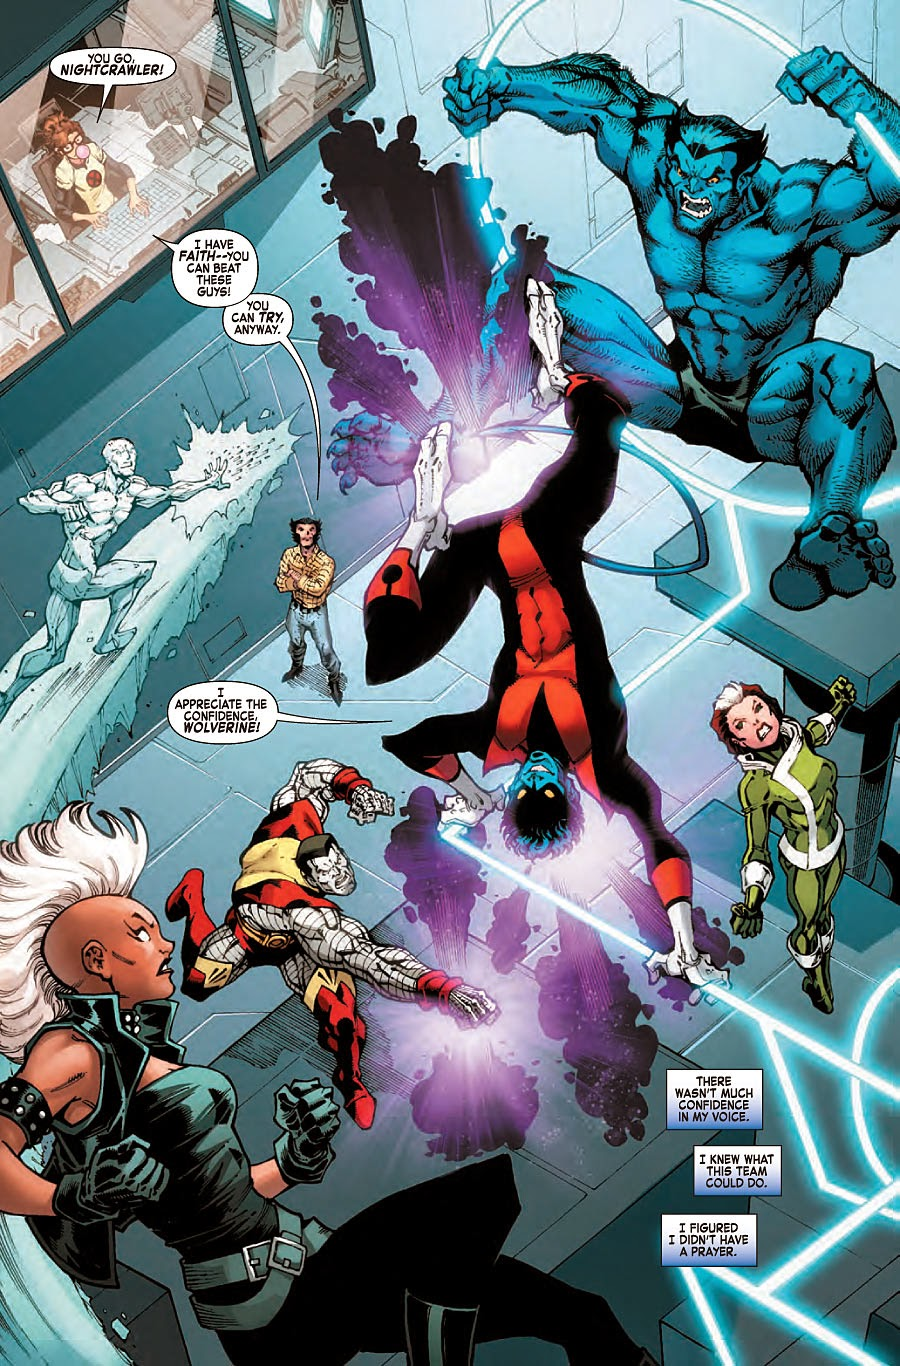 Nightcrawler trains with the X-Men in a flashback